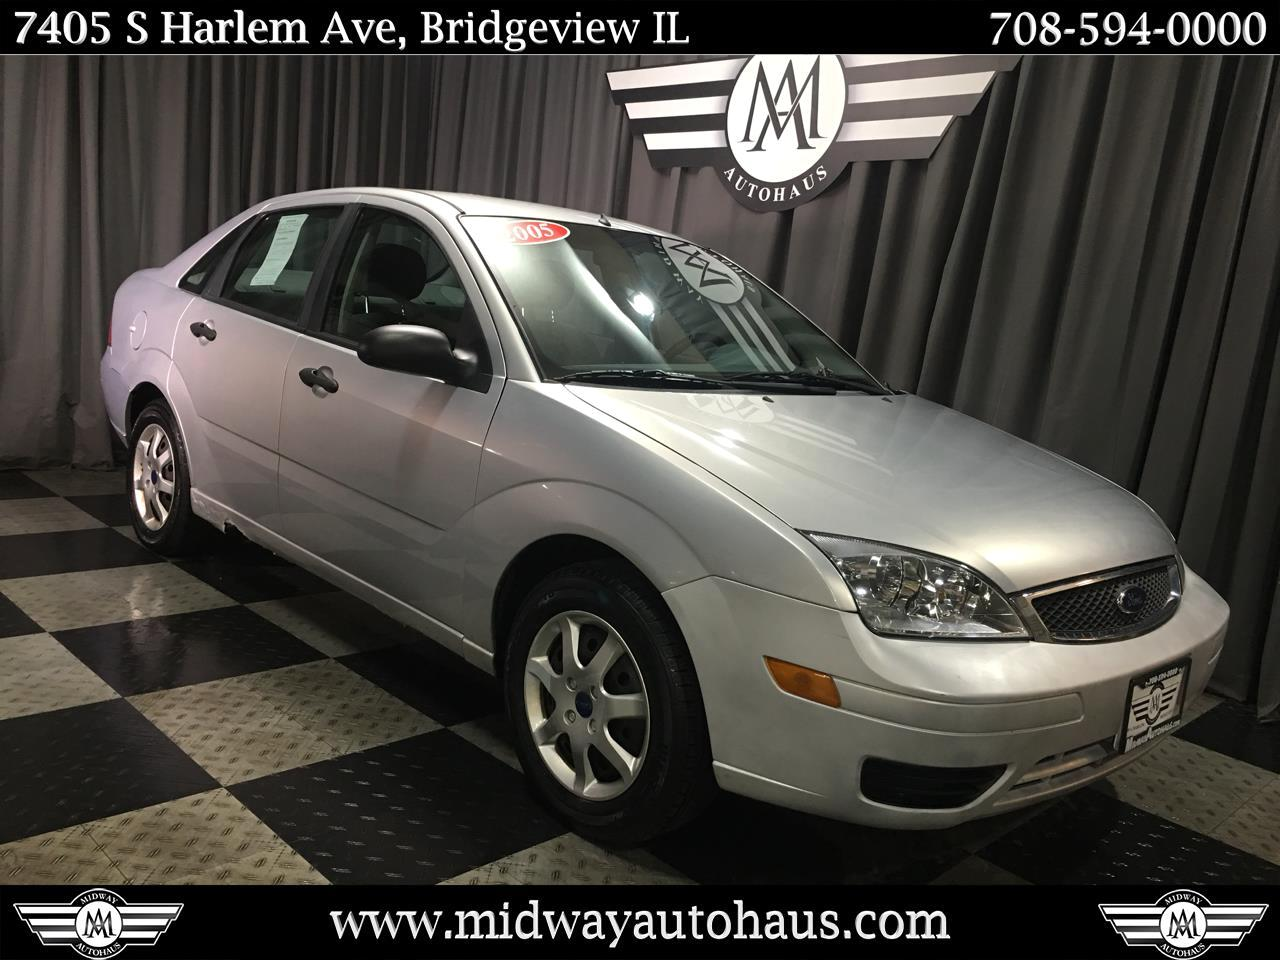 Pre-Owned 2005 Ford Focus 4dr Sdn ZX4 S